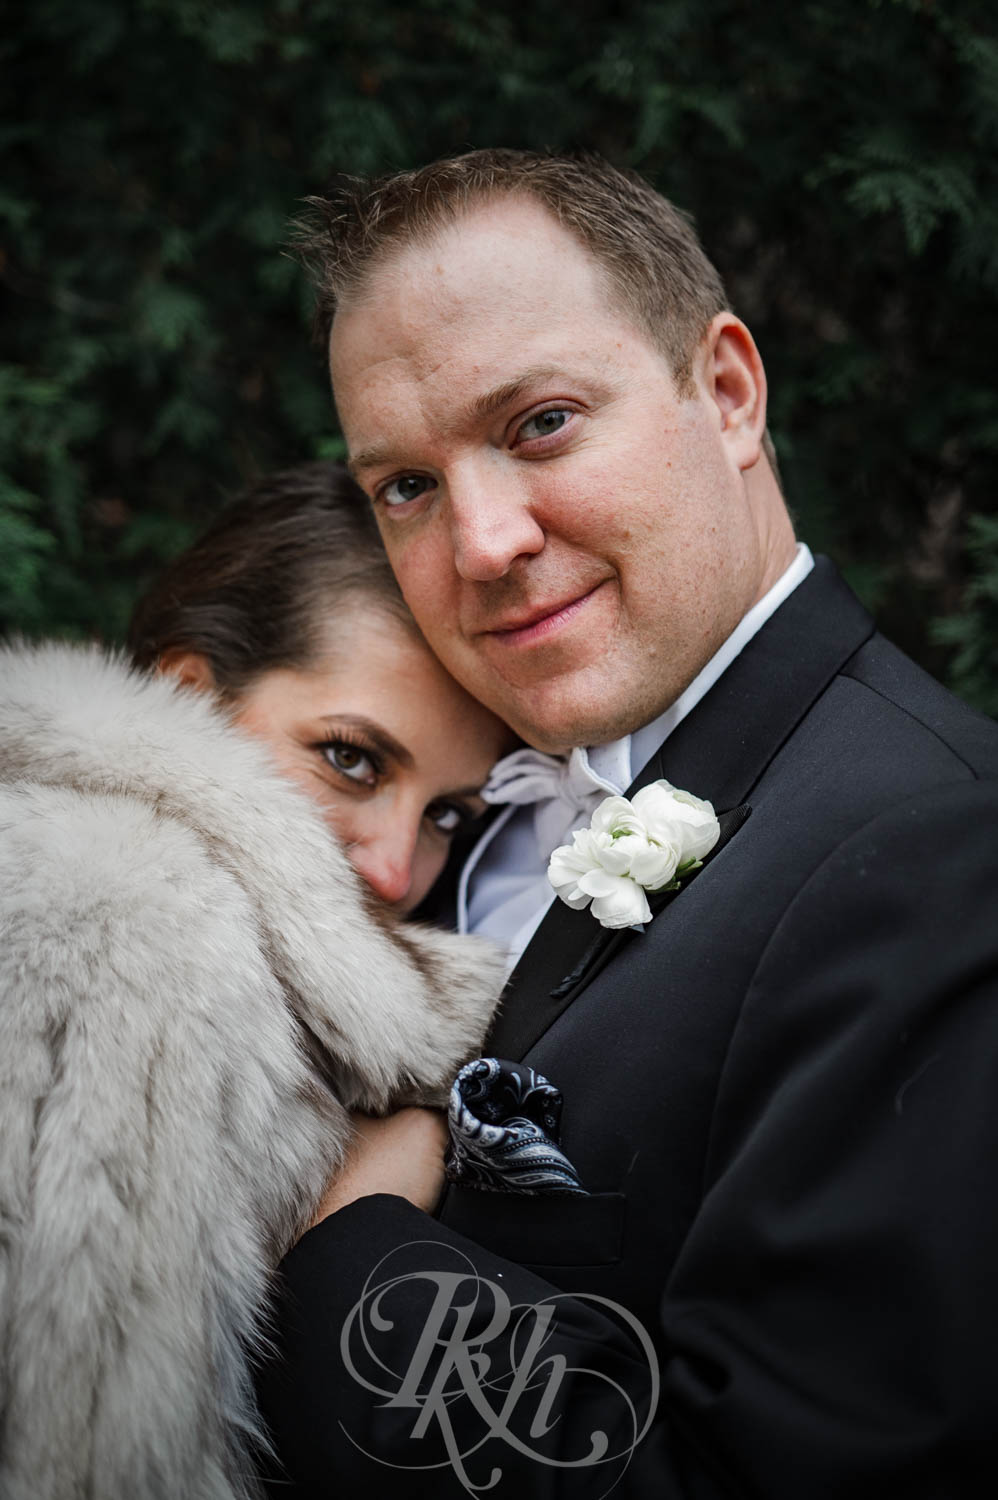 Jackie & Brett - Minnesota Wedding Photography -  St. Paul Hotel - RKH Images - Blog (17 of 48).jpg